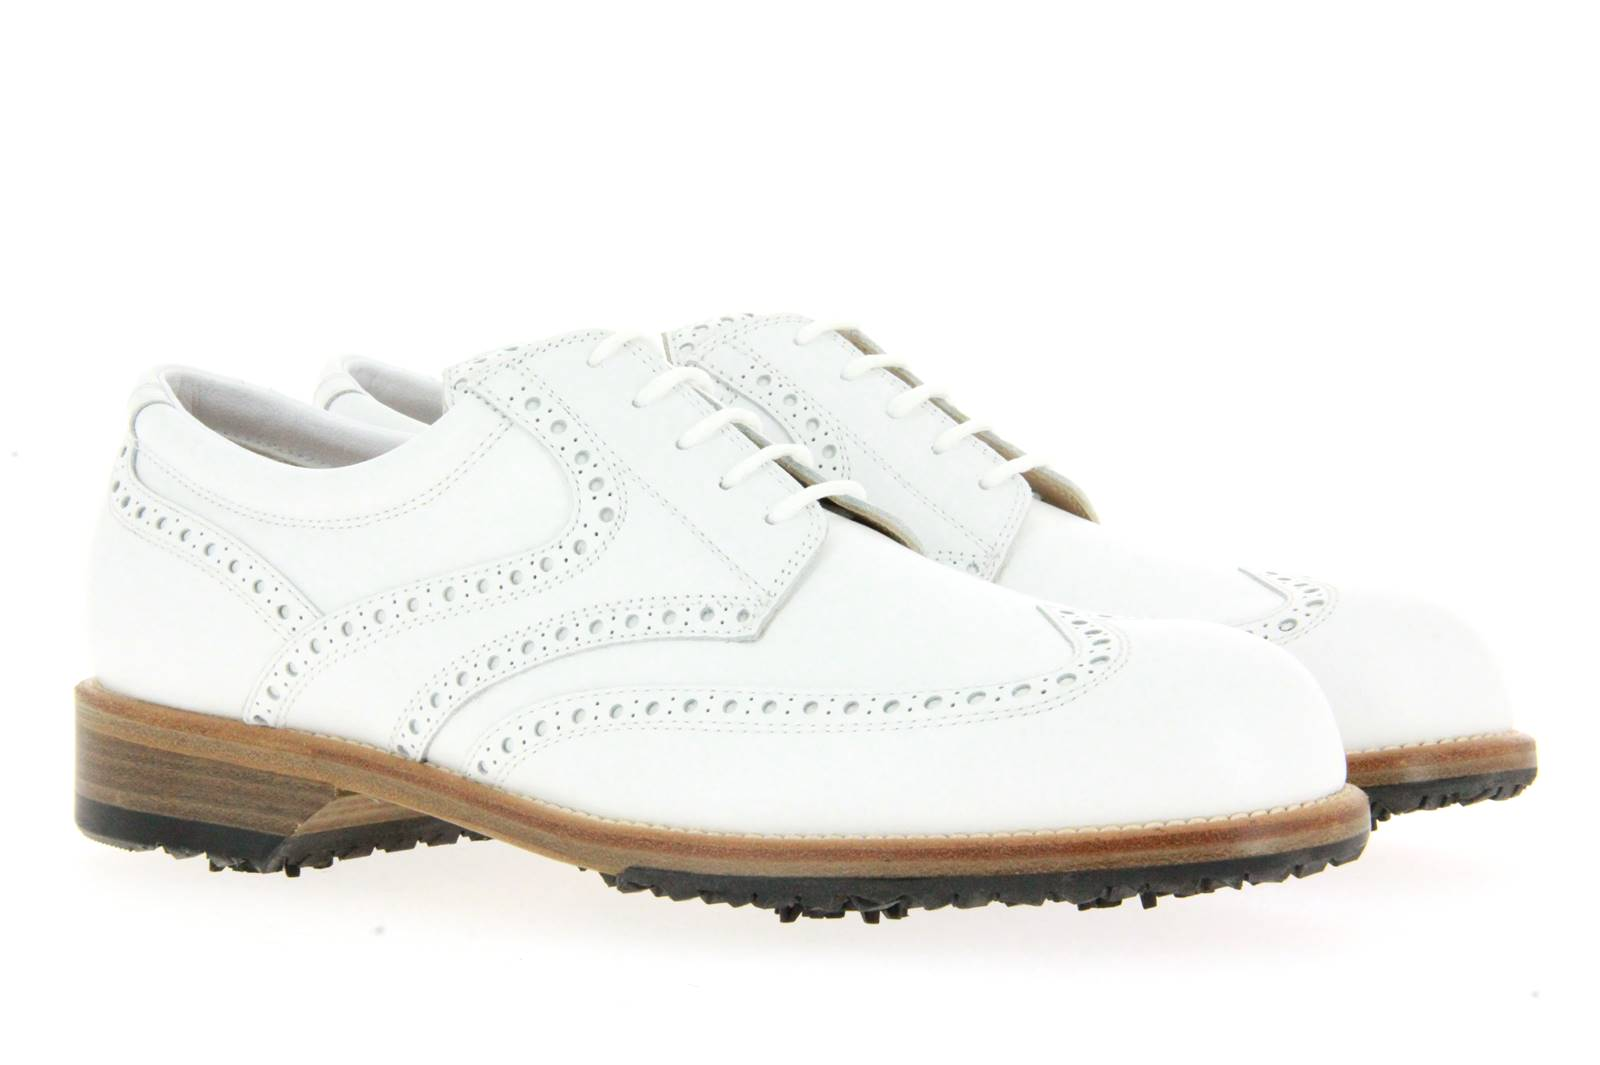 Tee Golf Shoes men's - golf shoes TOMMY BIANCO